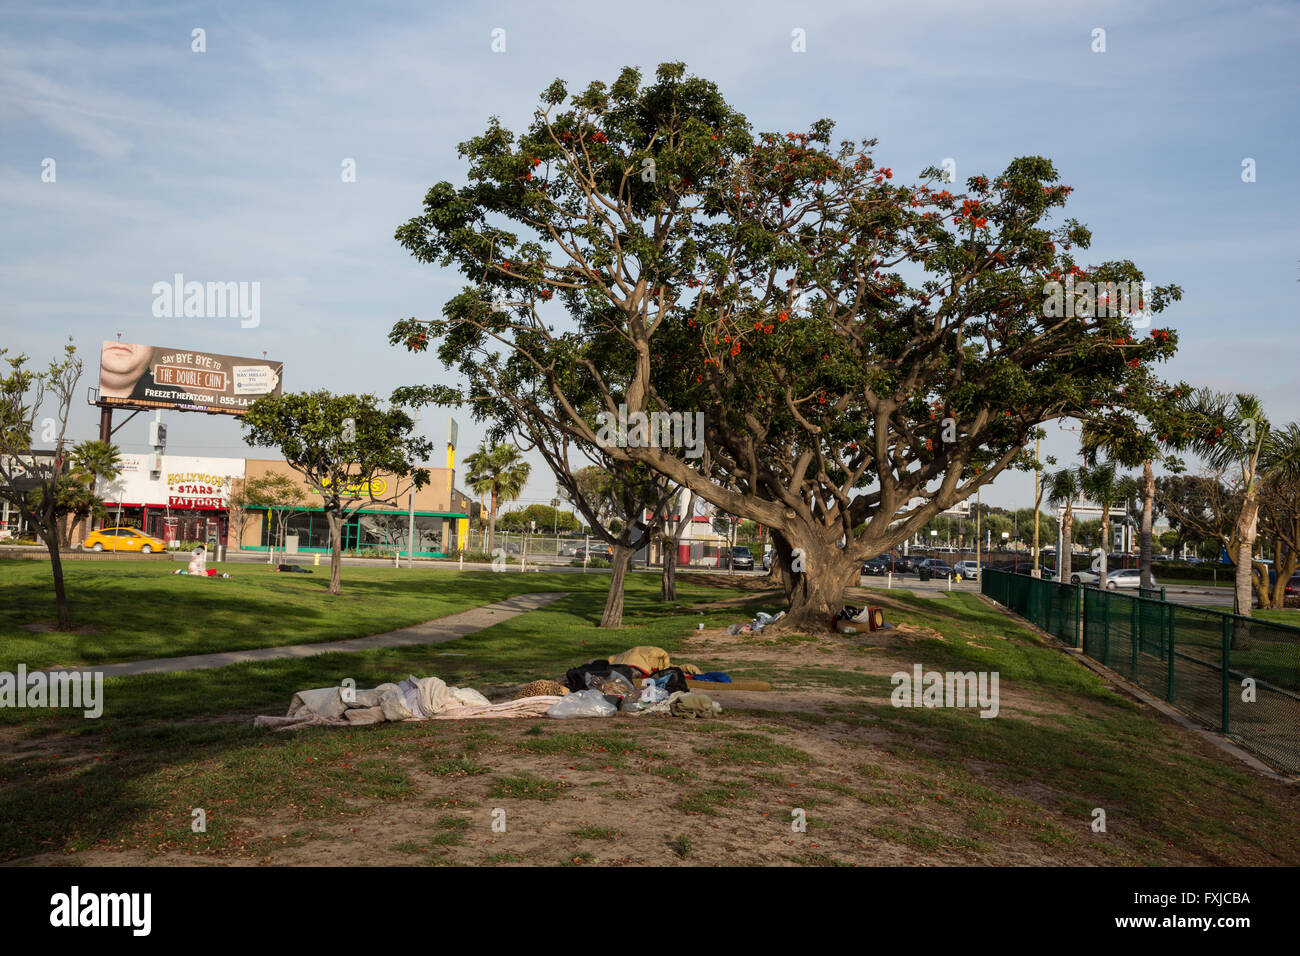 Homeless camp outside of LAX - Stock Image